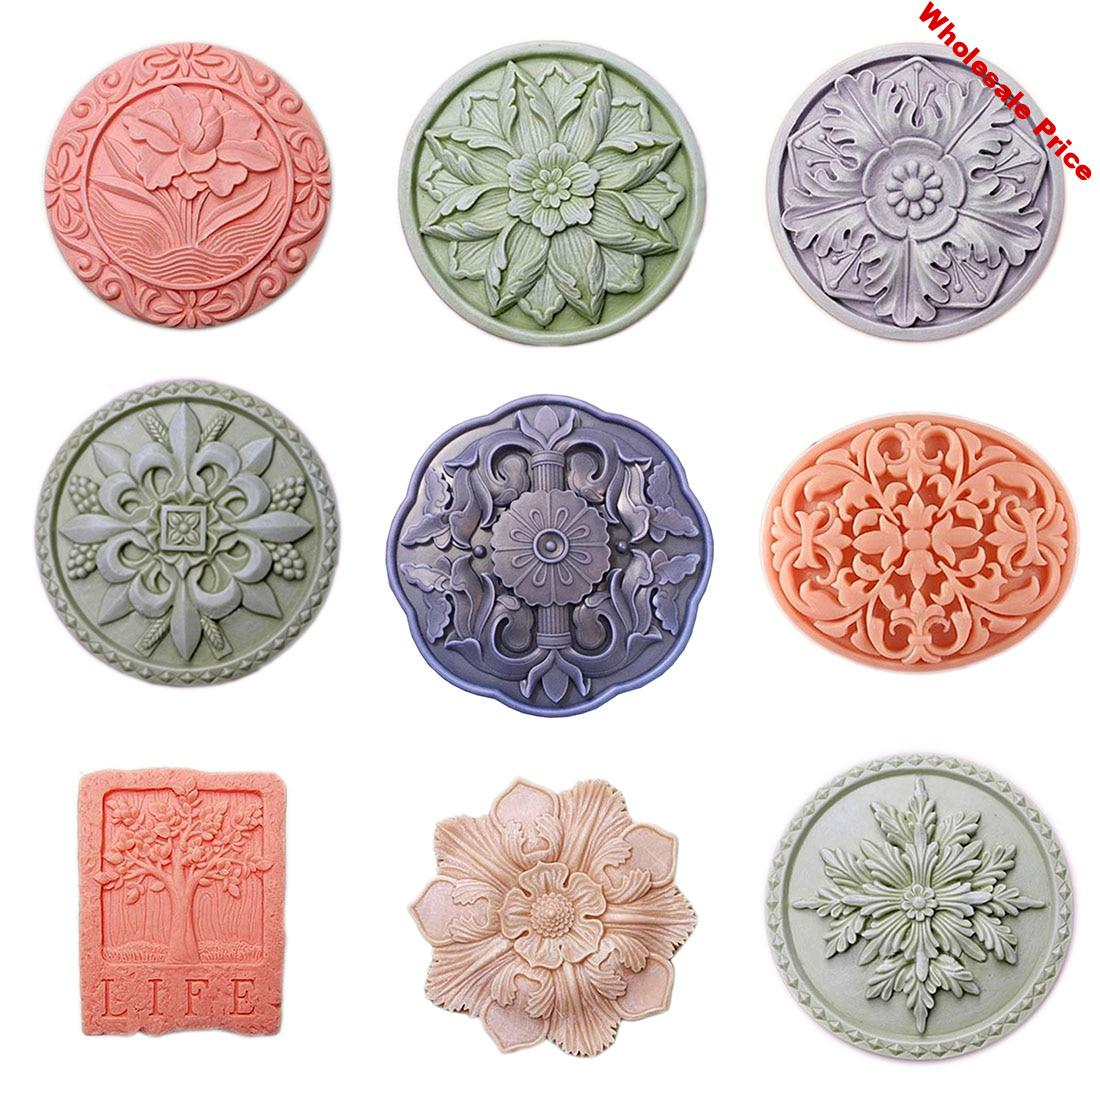 Flower Soap Silicon Molds Lotus Soap Form Tree Soap Making Supplies Round Soap Mold Rectangle Silicone Mold Soap